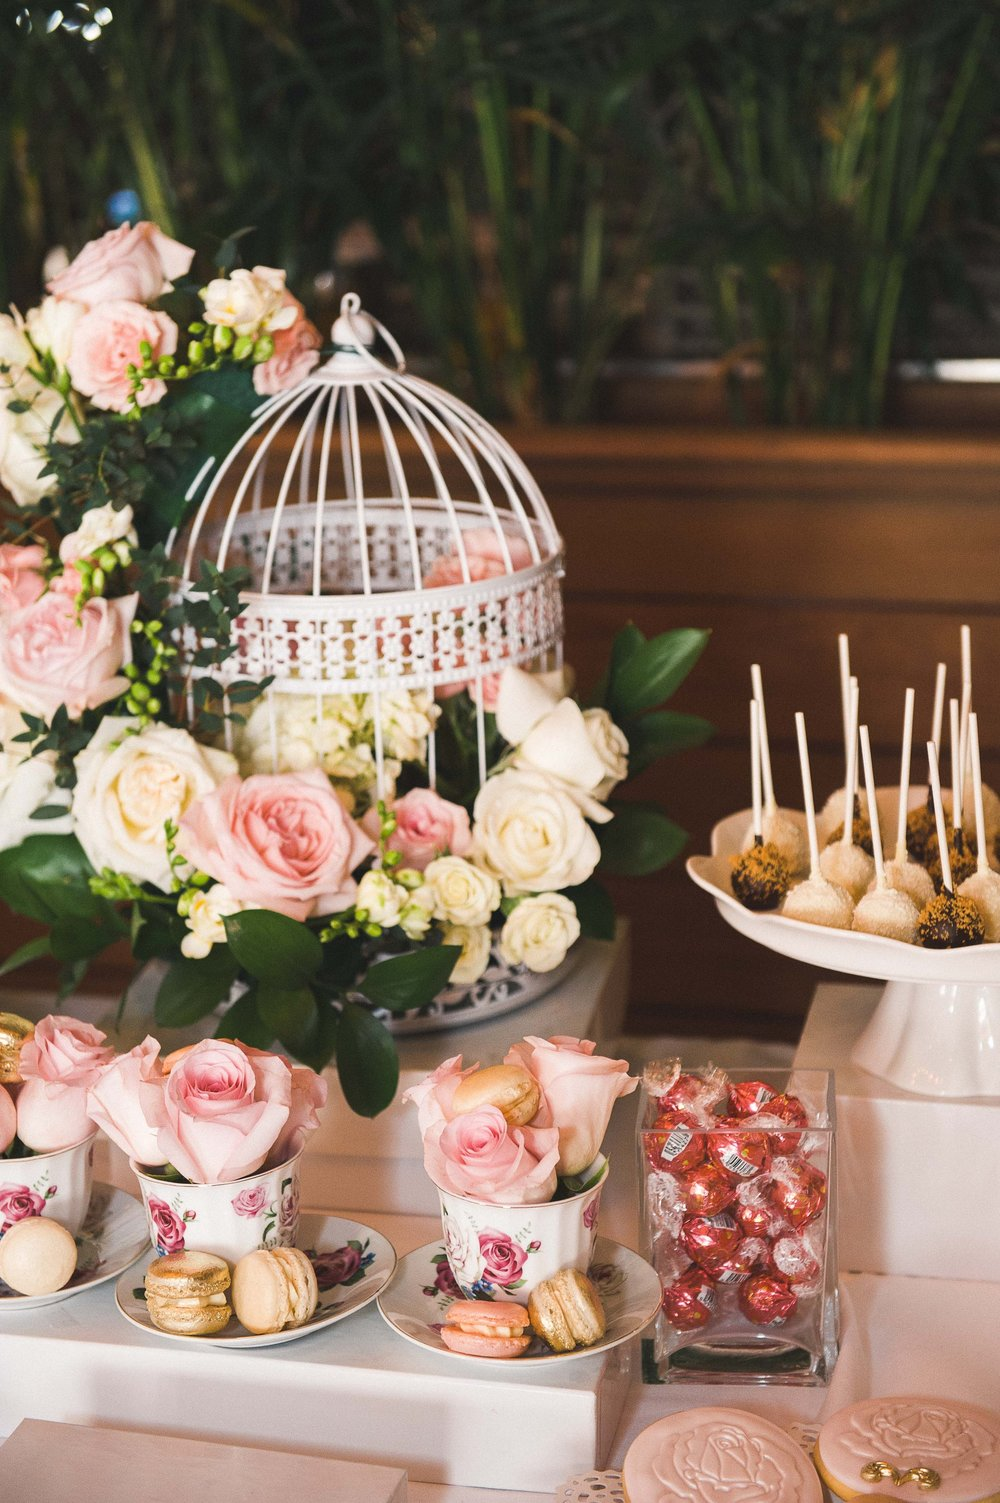 Bridal Shower  Events by Cece-0016.jpg